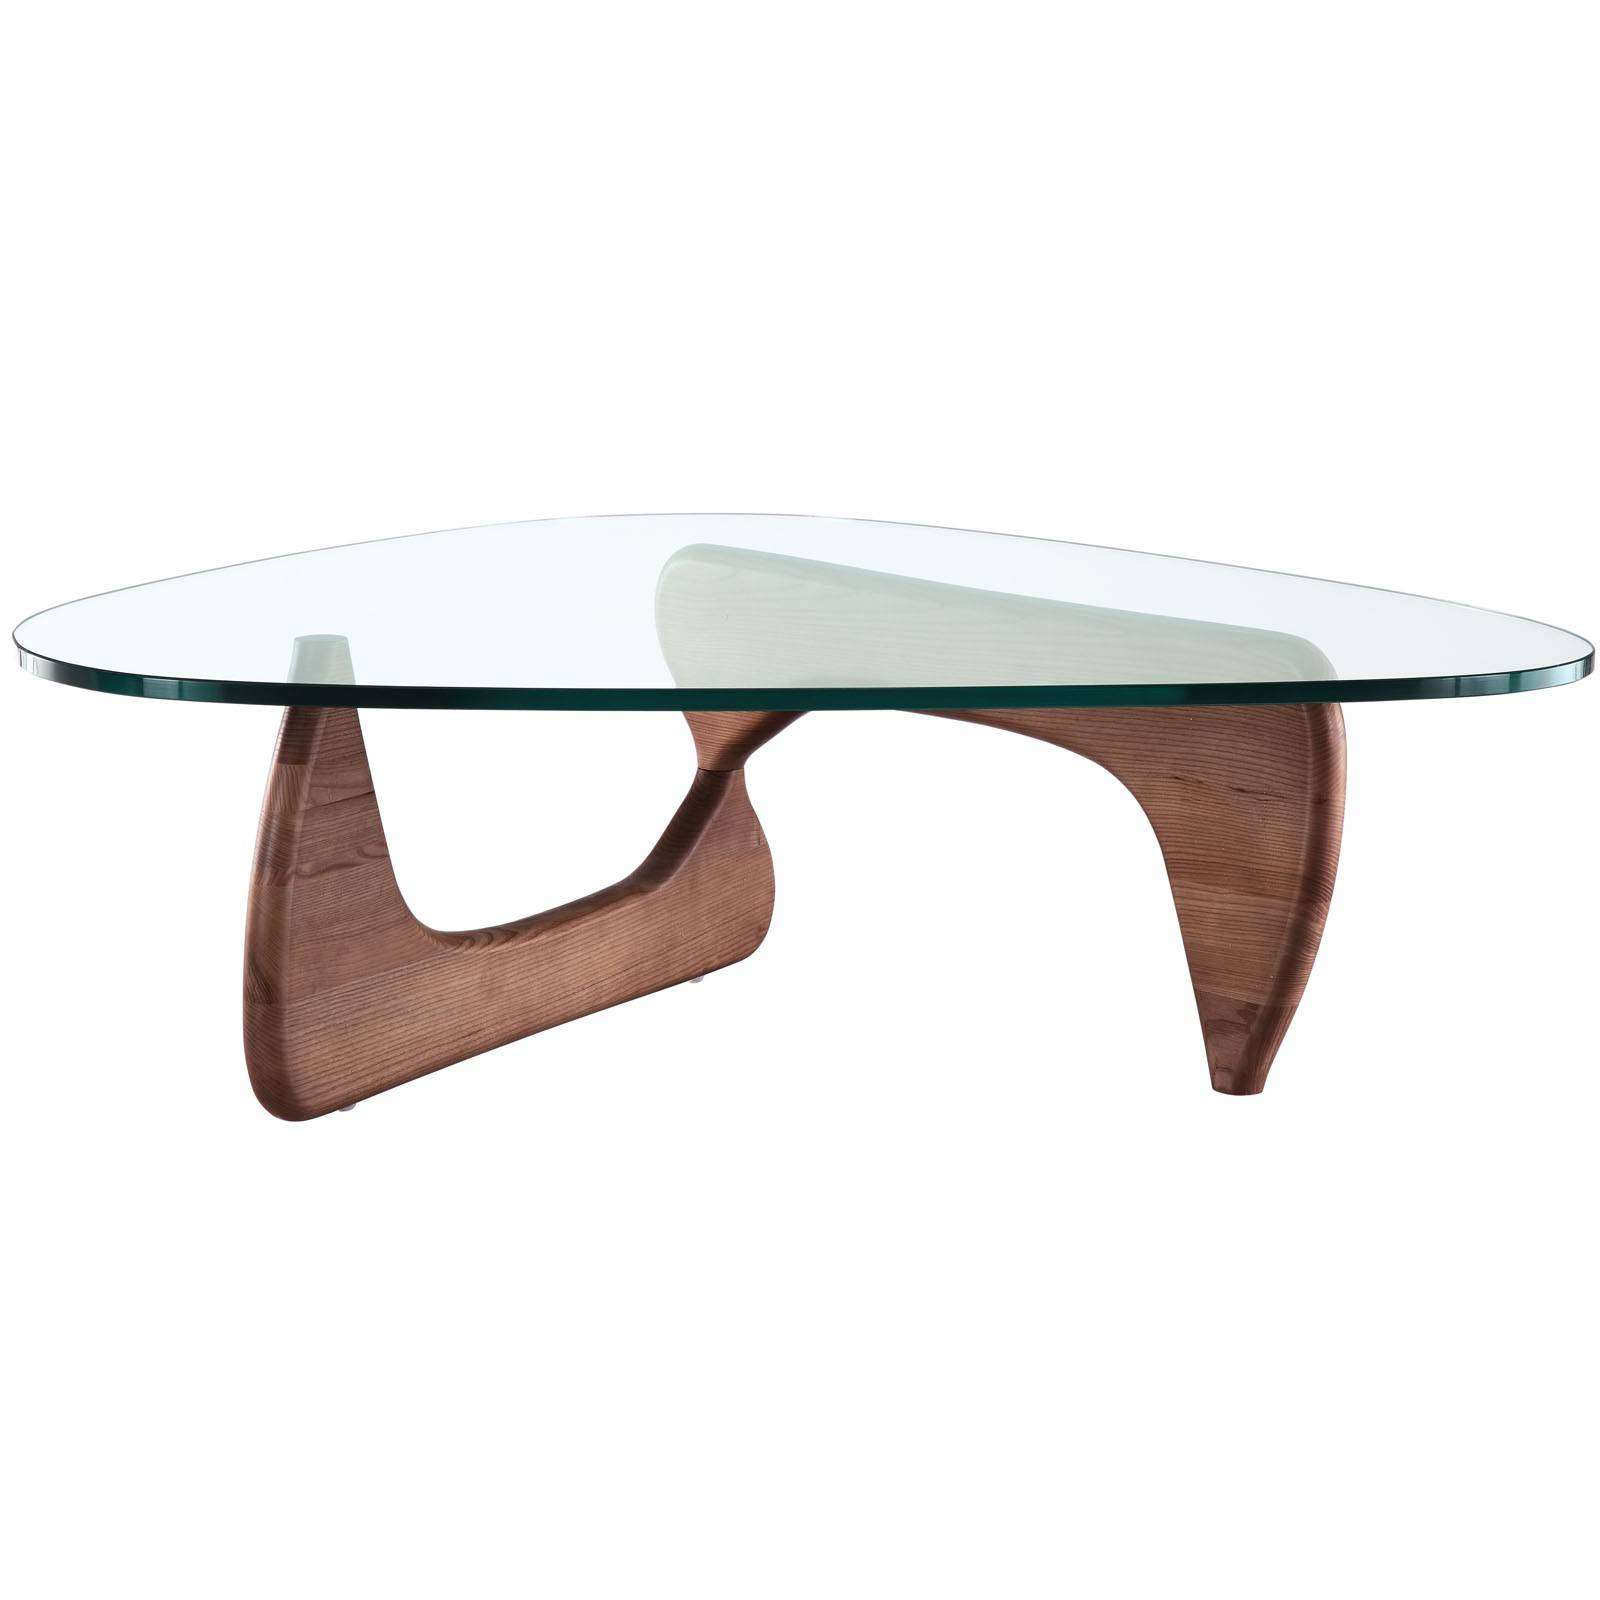 Marvelous Noguchi Table Noguchi Coffee Table Replica Modterior Cjindustries Chair Design For Home Cjindustriesco